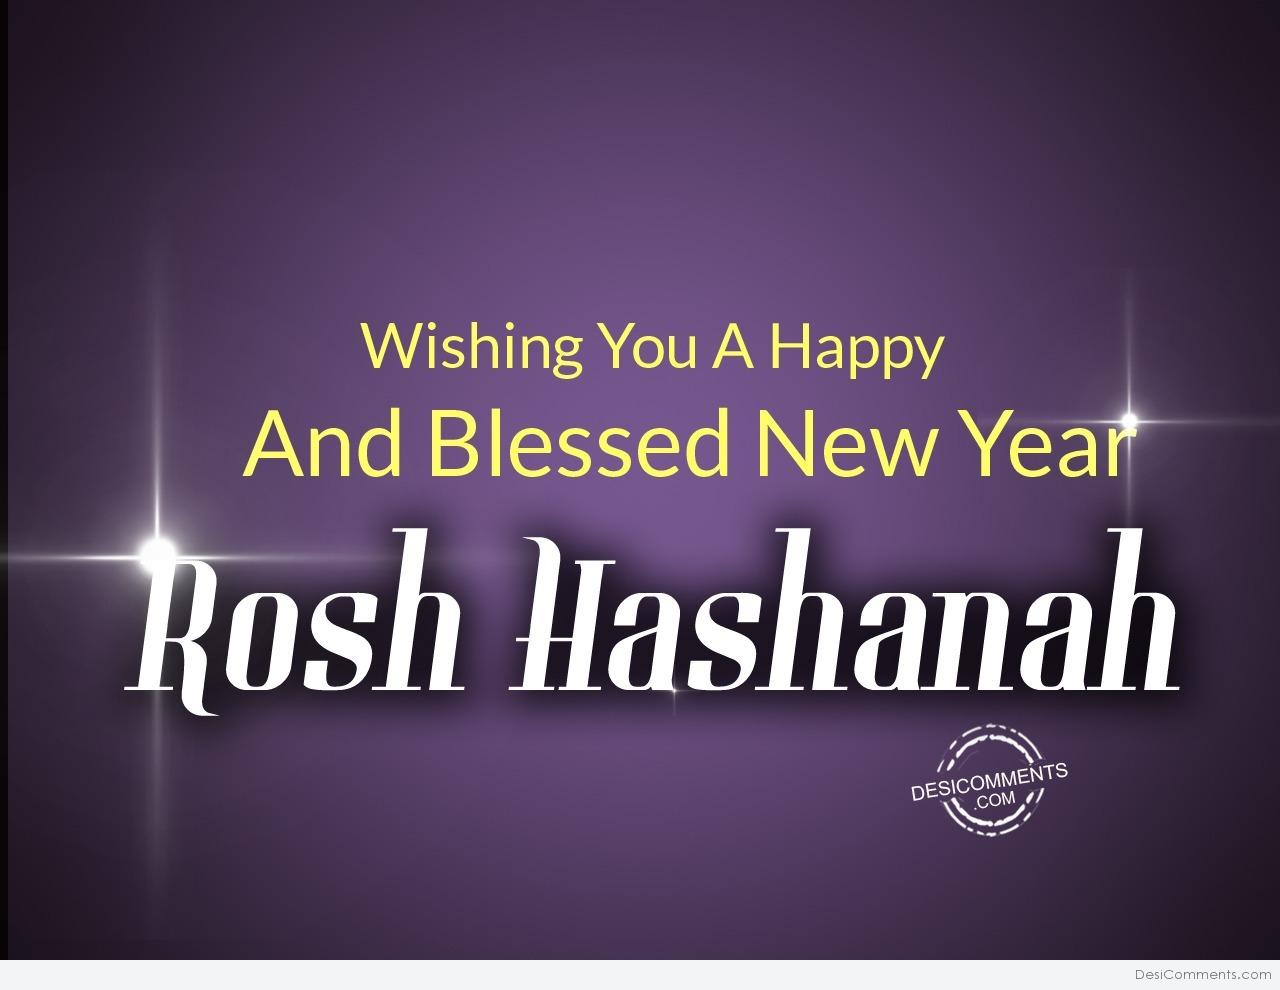 41 happy rosh hashanah 2016 greetings pictures and images wishing you a happy and blessed new year rosh hashanah kristyandbryce Choice Image